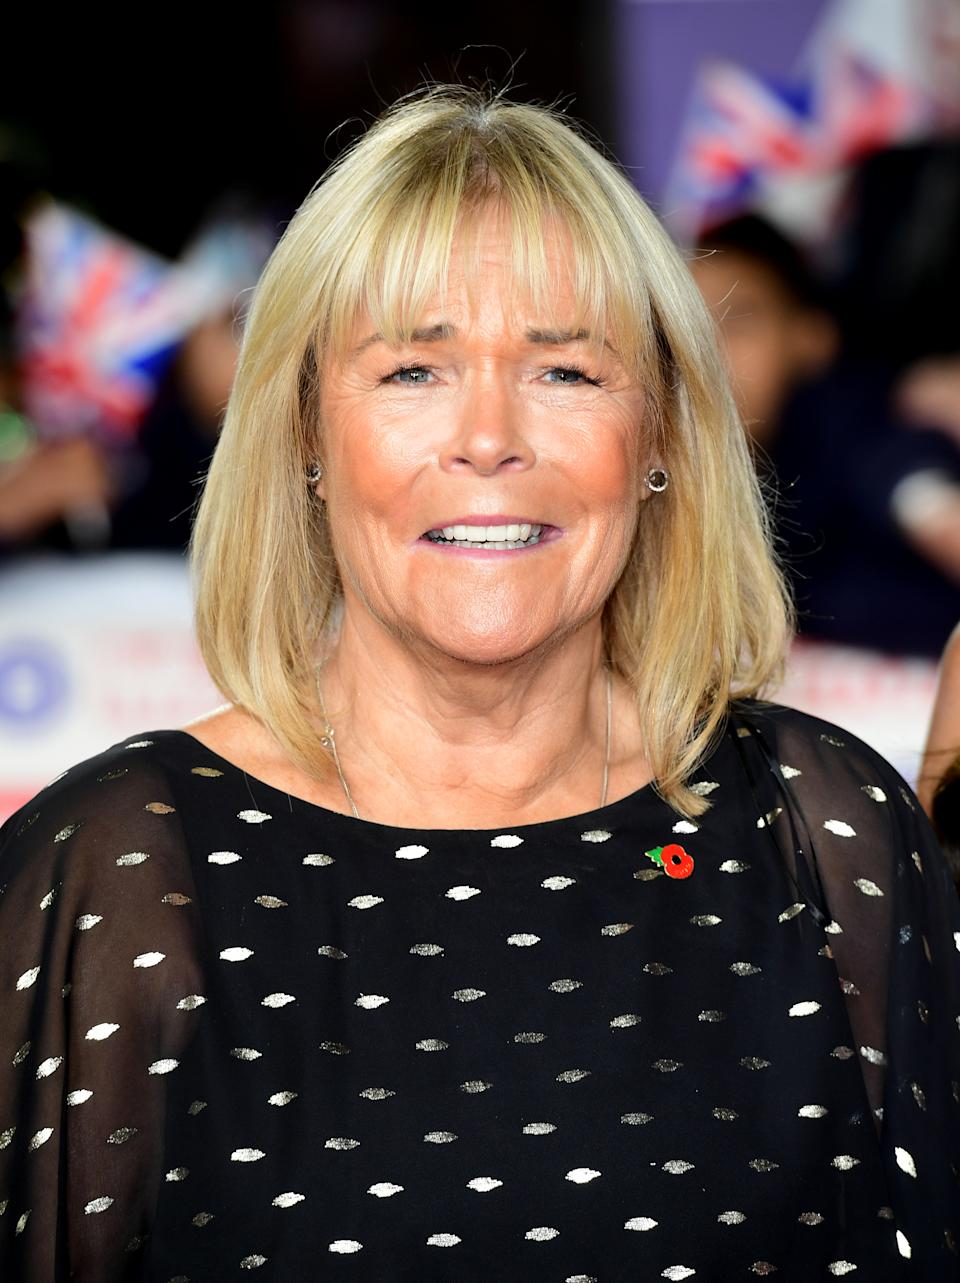 Linda Robson arriving for the Pride of Britain Awards held at the The Grosvenor House Hotel, London. (Photo by Ian West/PA Images via Getty Images)